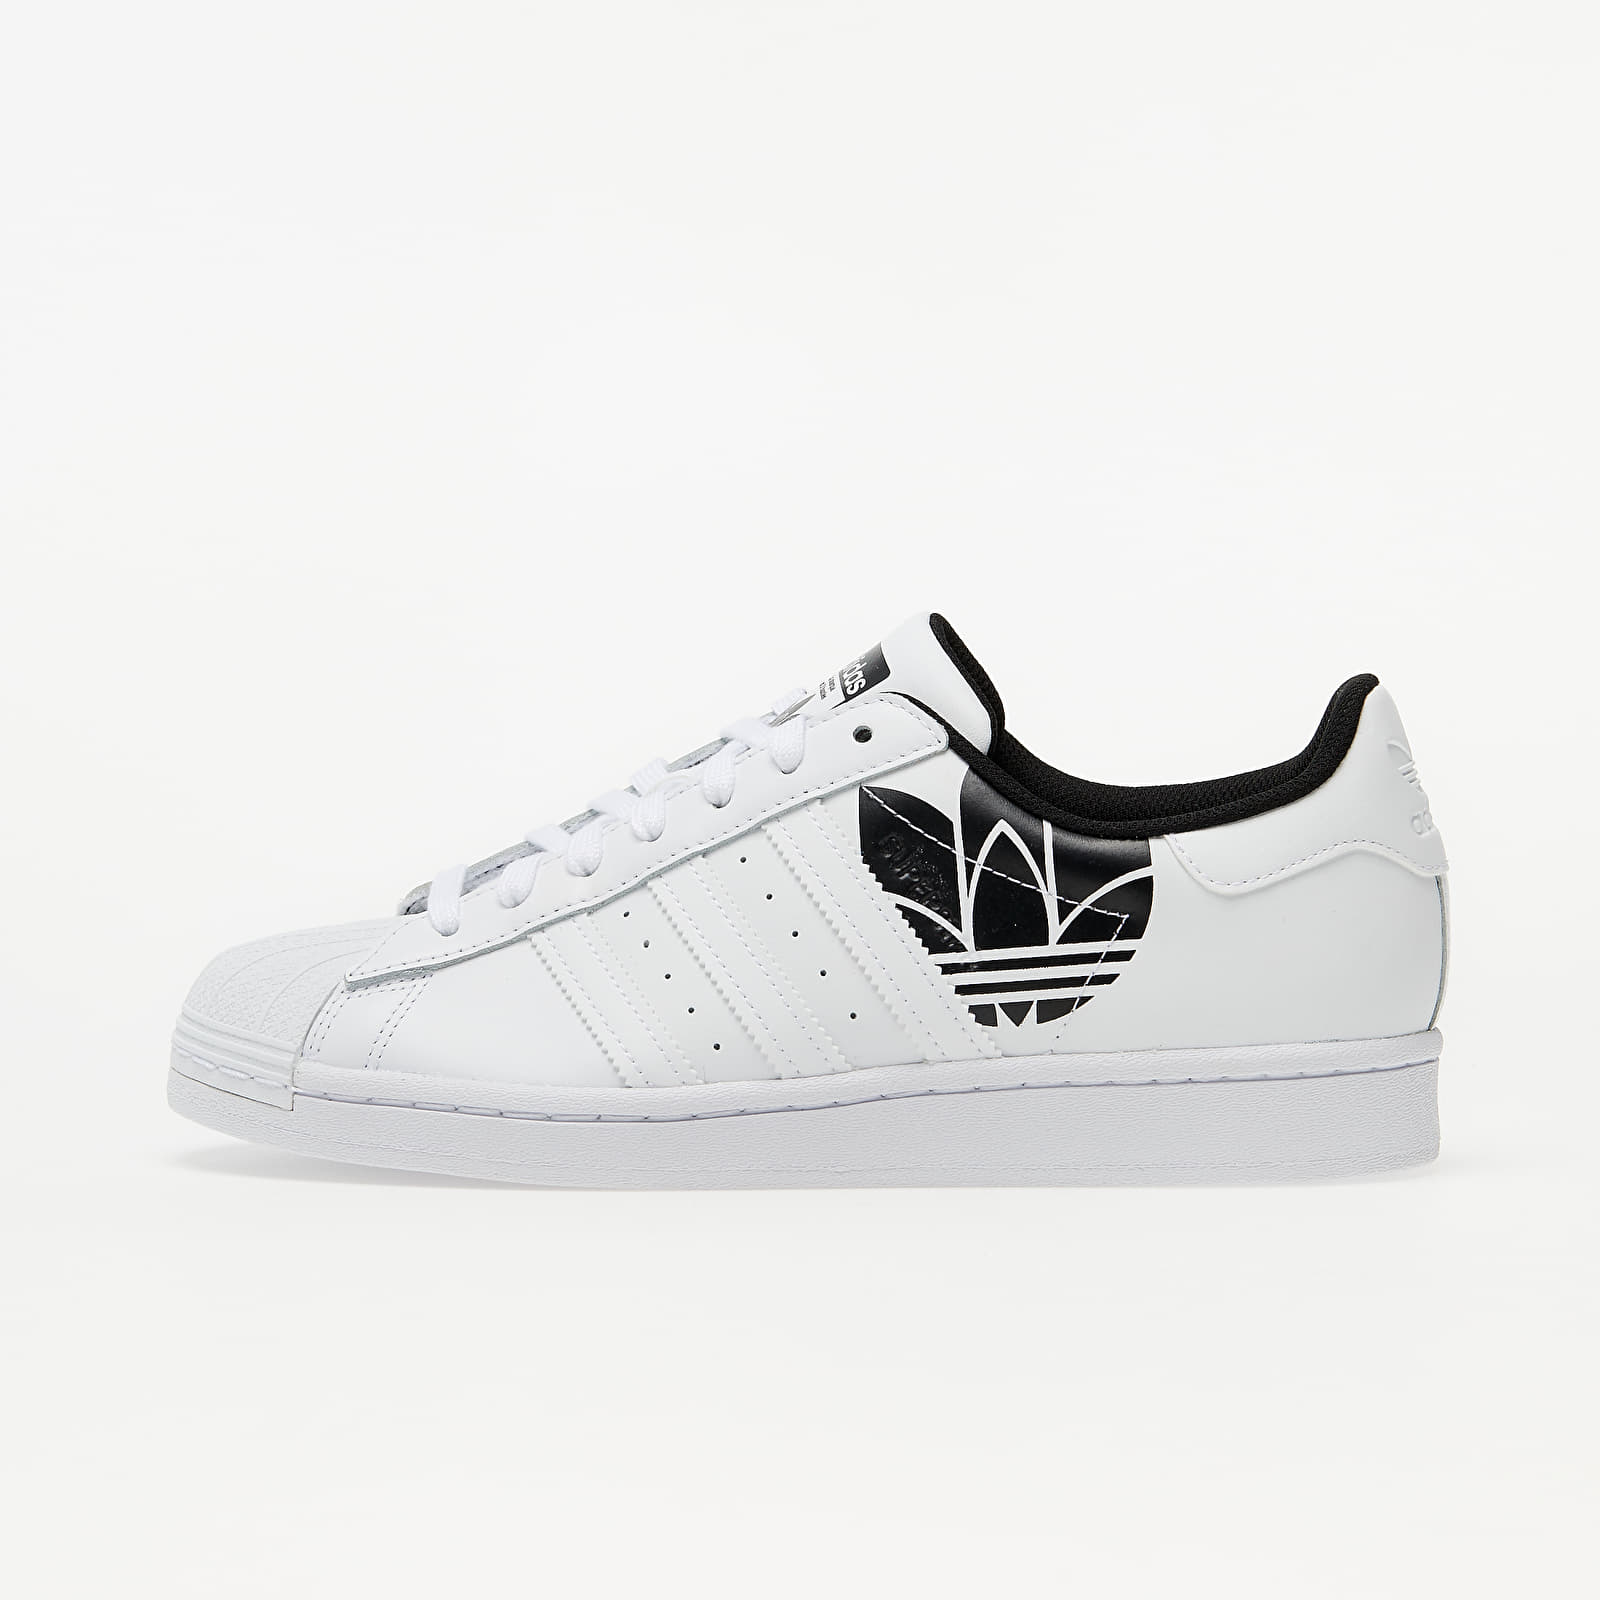 adidas Superstar Ftw White/ Ftw White/ Core Black EUR 44